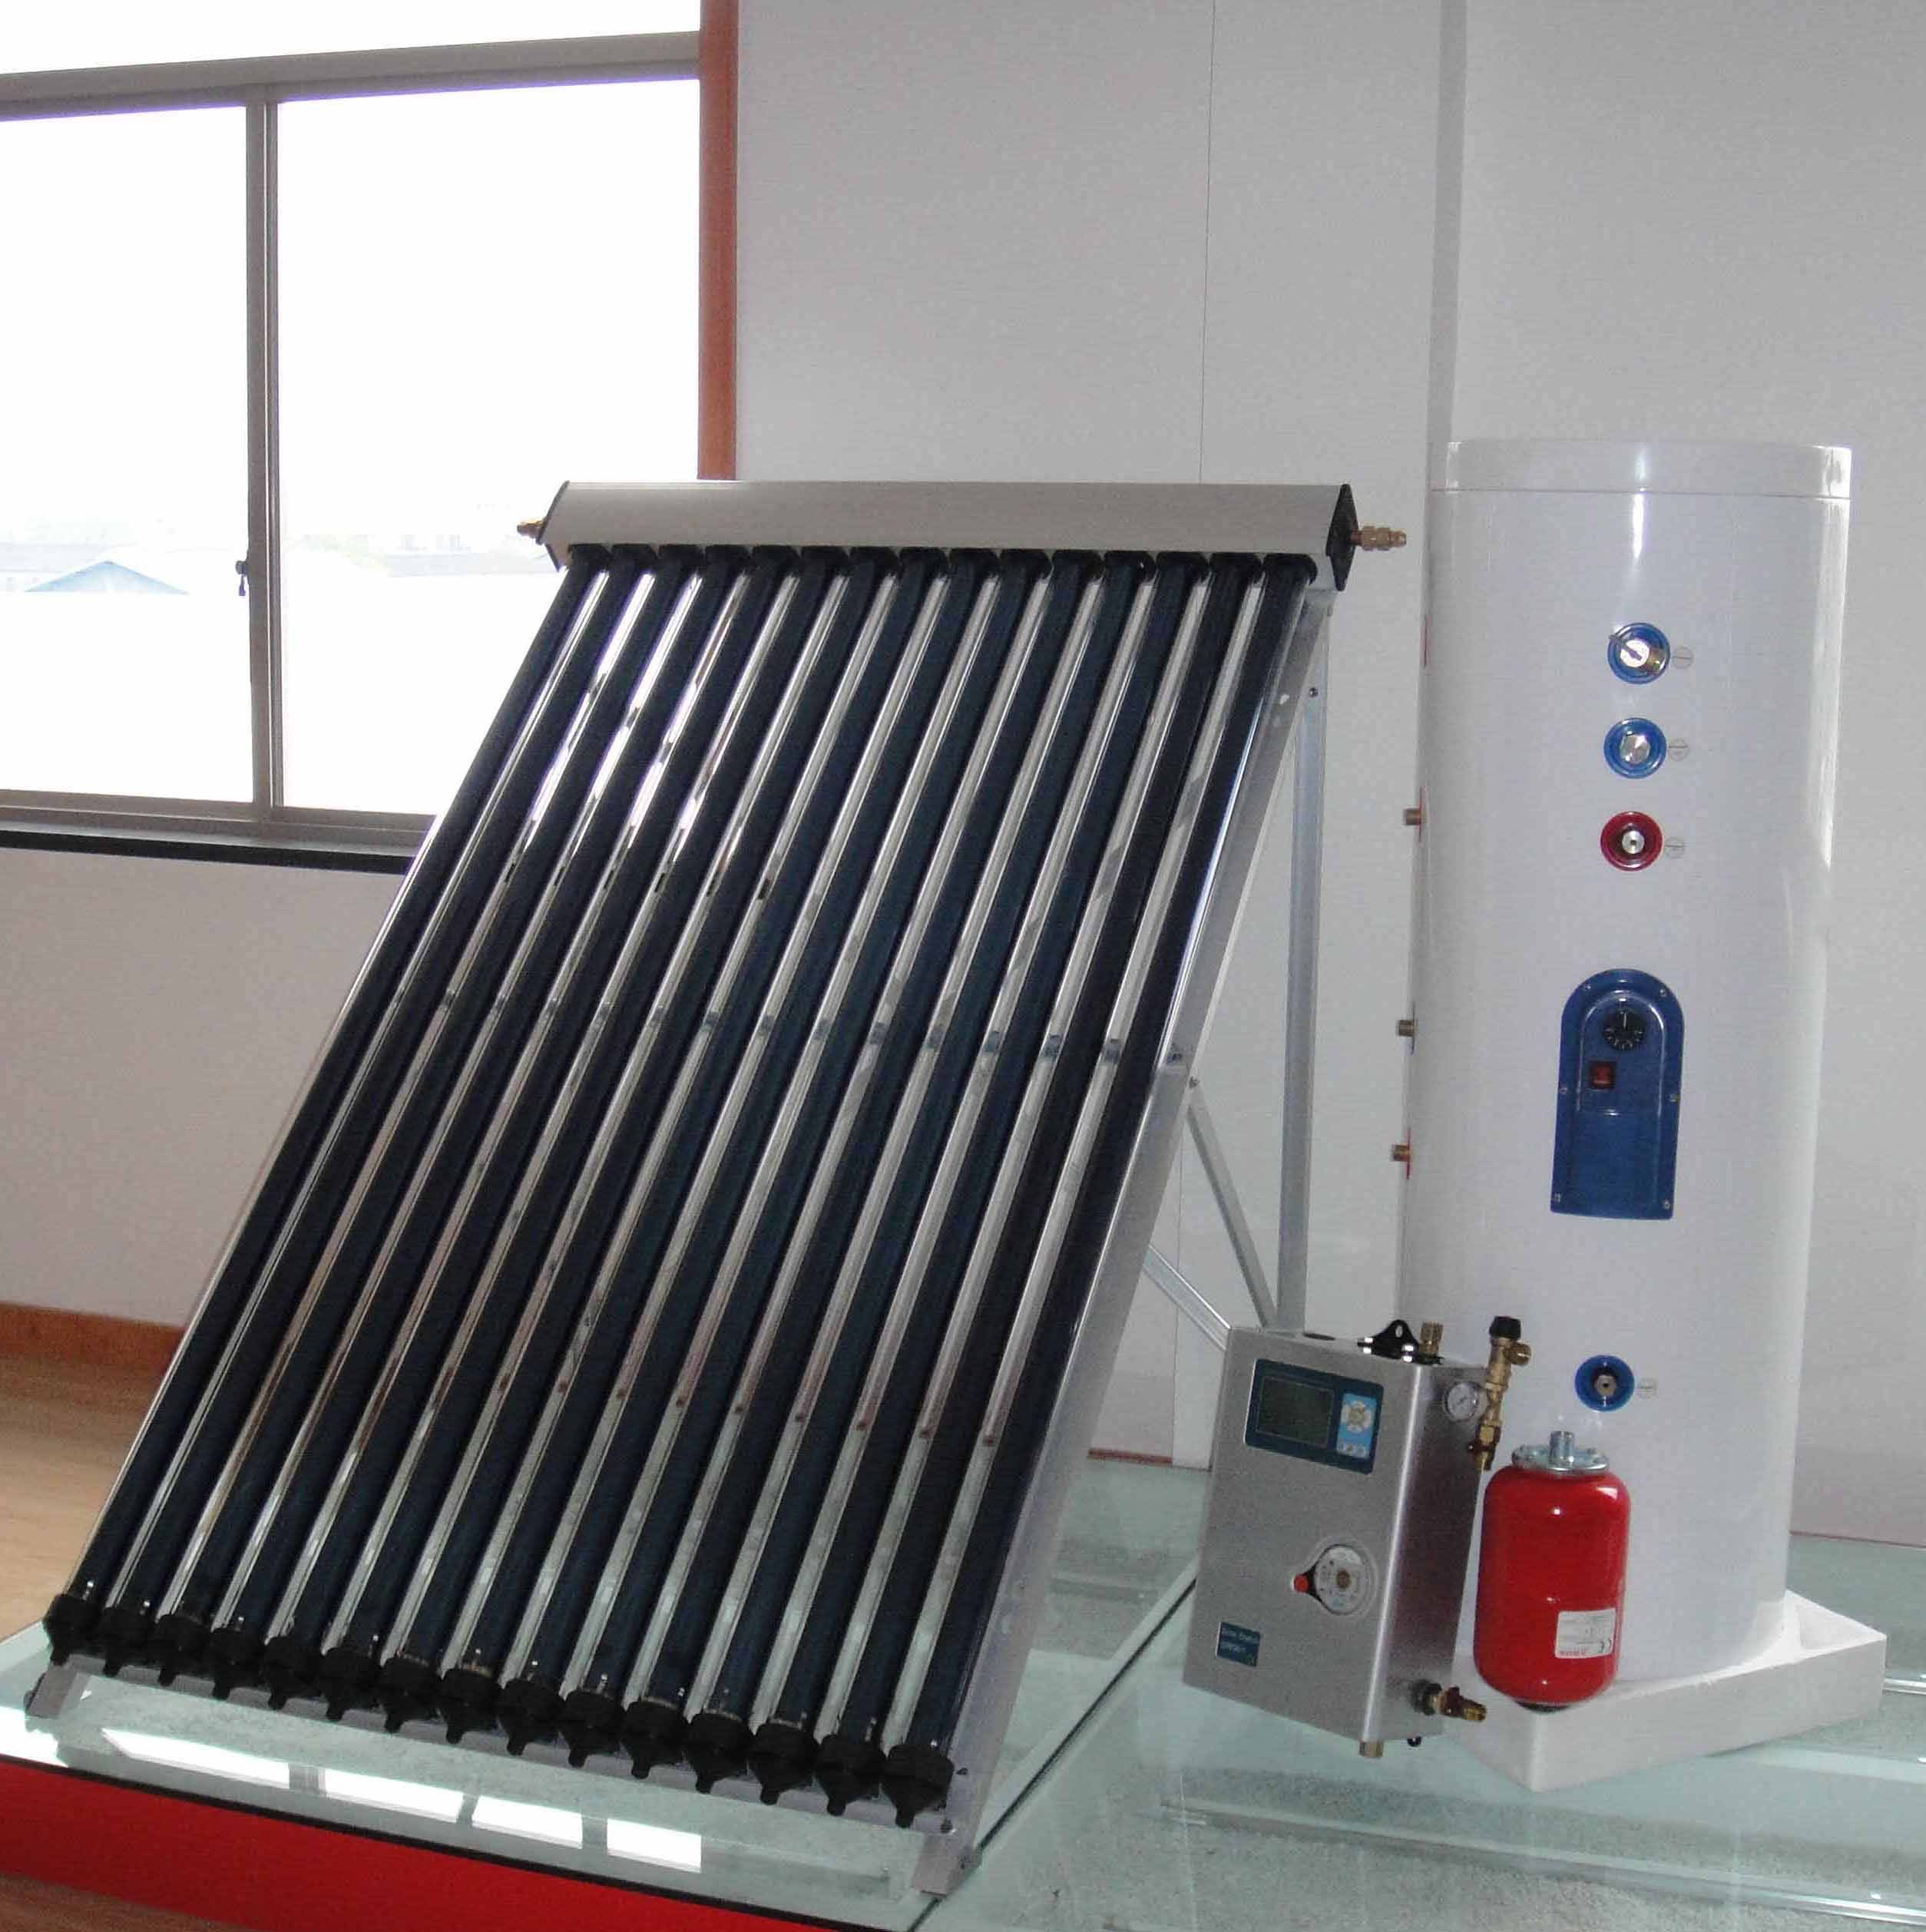 Cheapest most popular high quality low priceChina supplier flat panel solar water heater